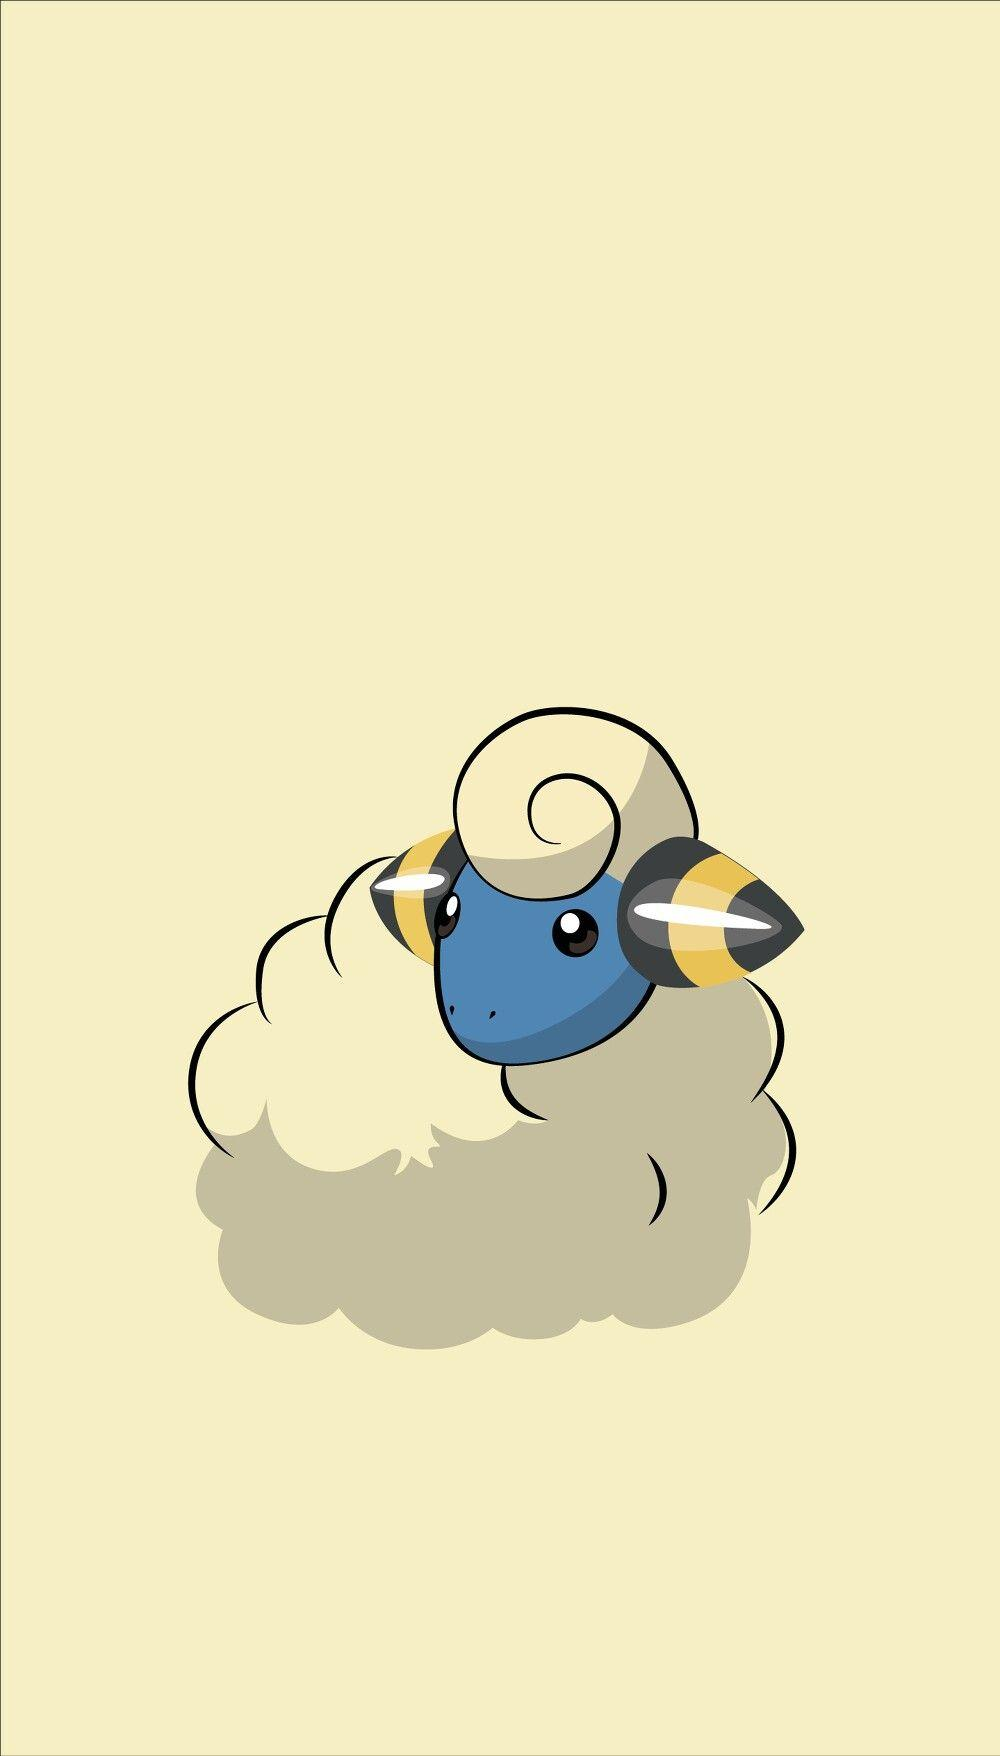 Mareep wallpaper ❤ | Pokémon | Pinterest | Wallpaper, Pokémon and ...